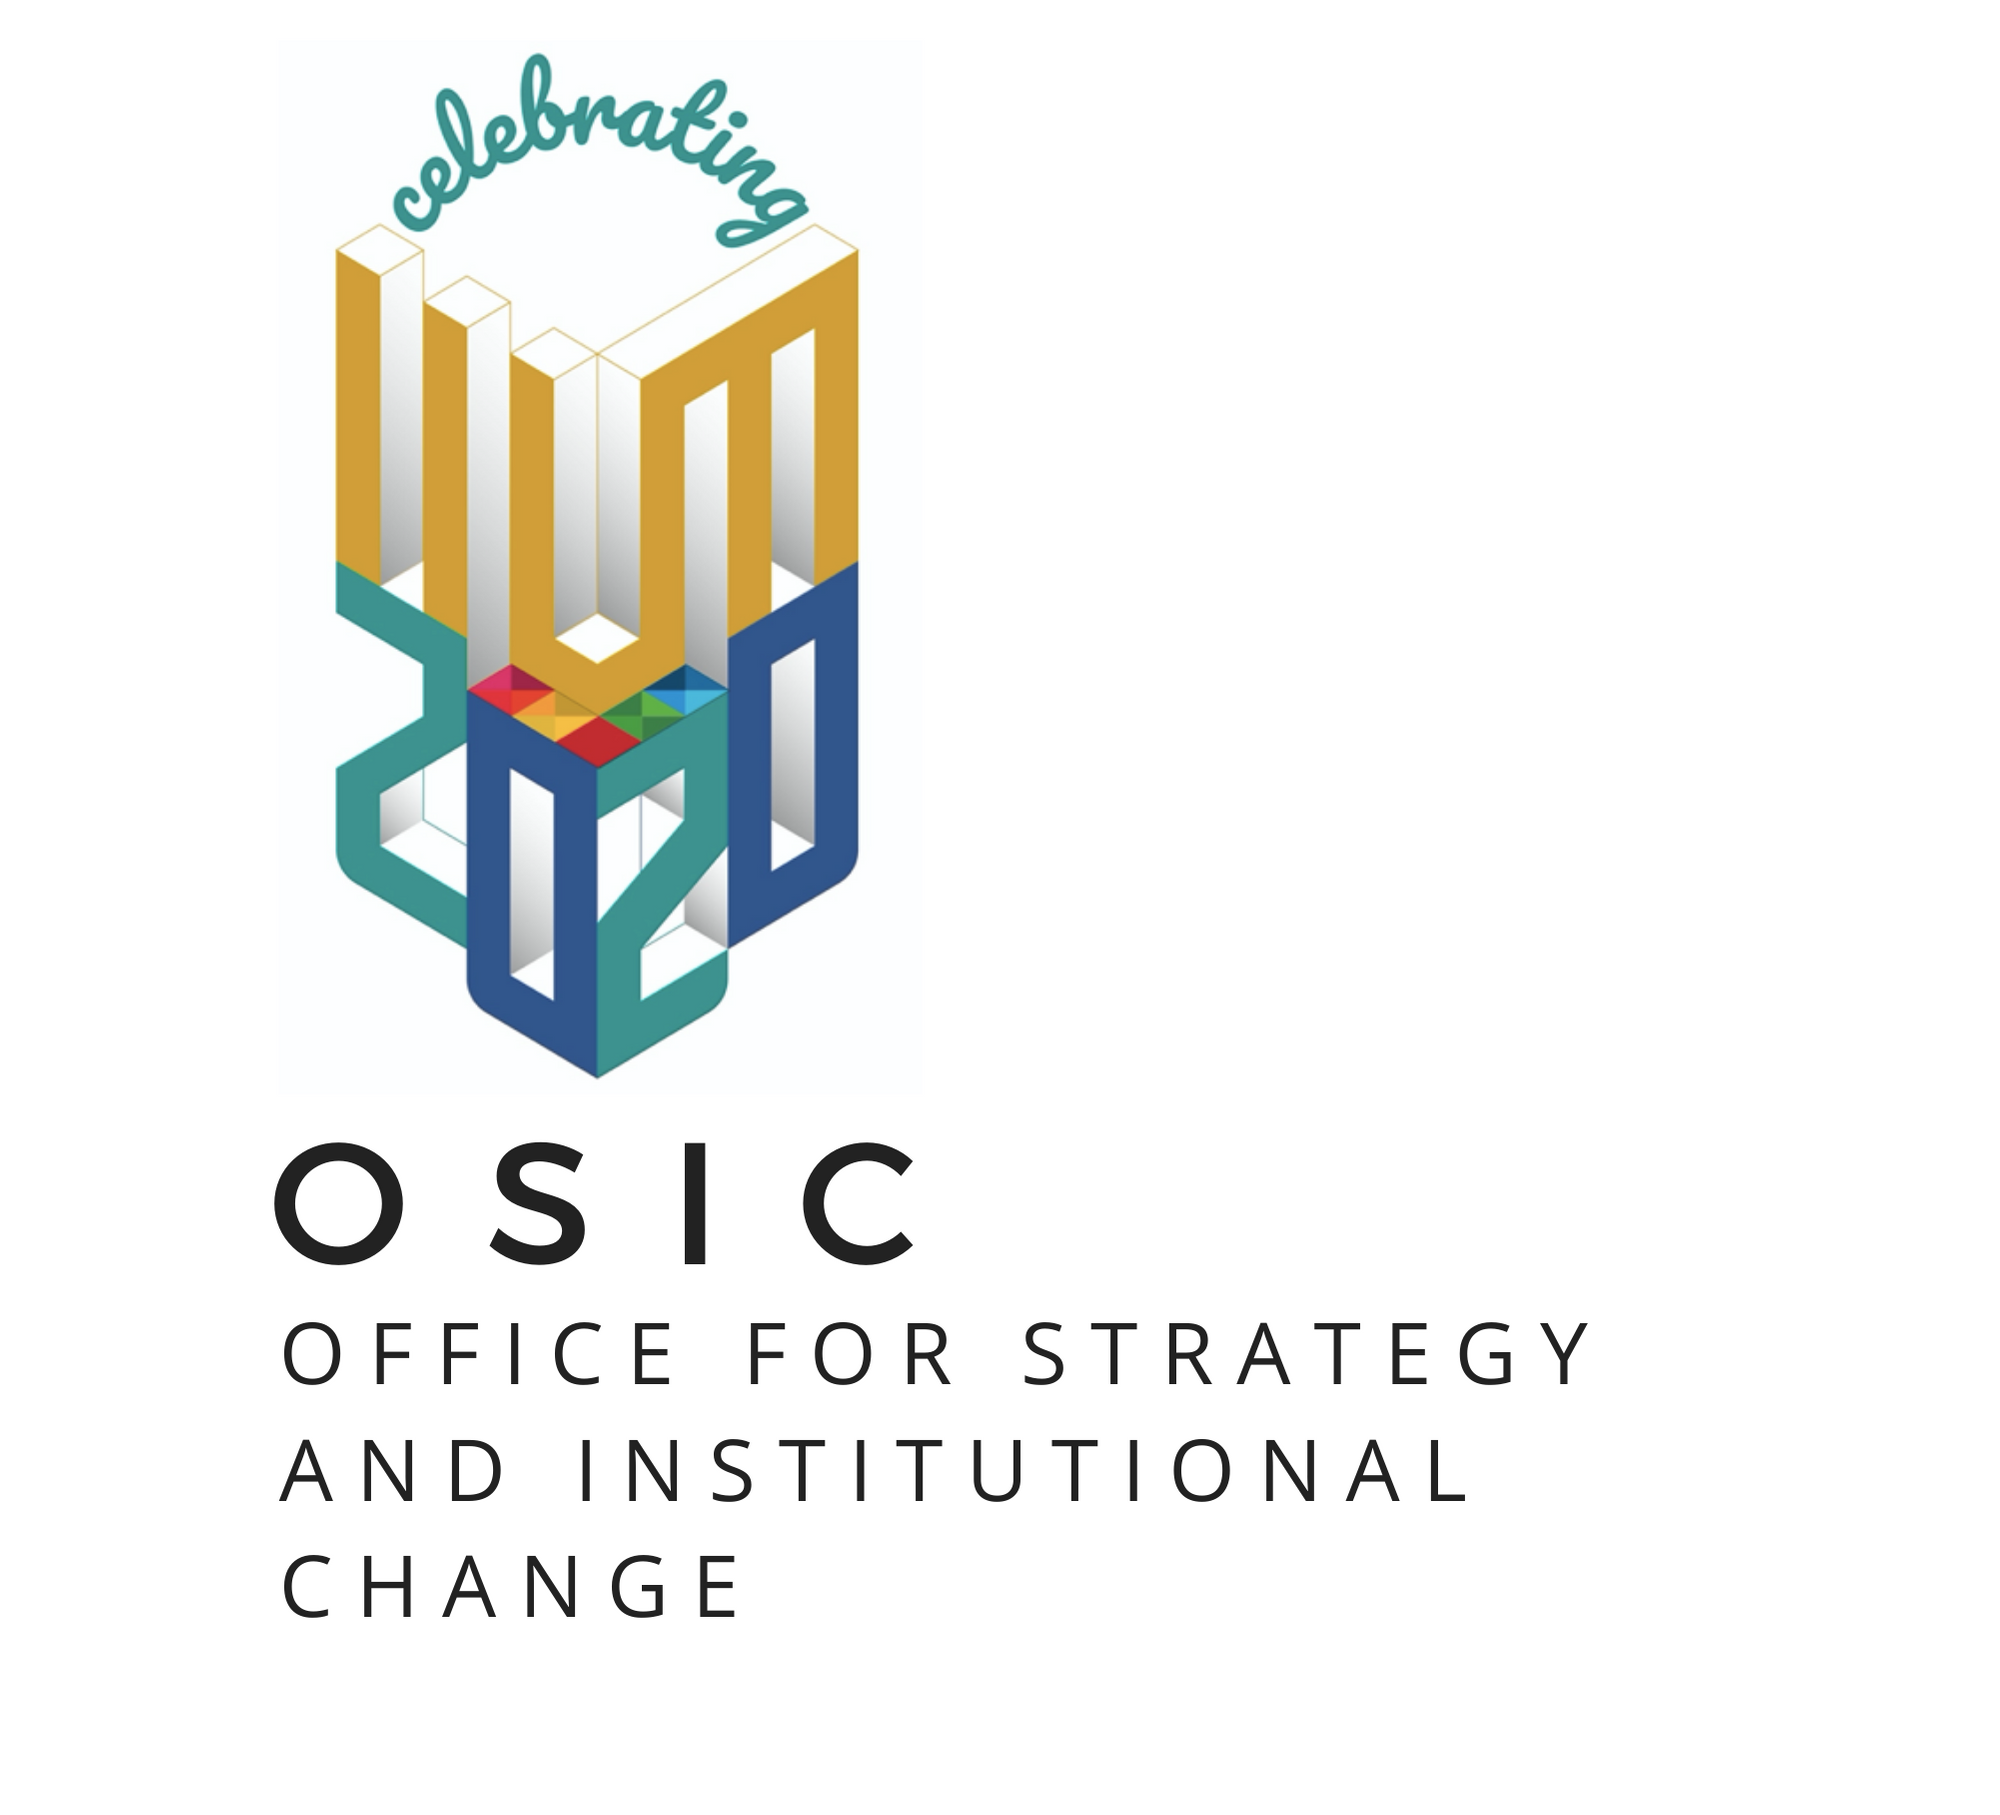 OFFICE FOR STRATEGY AND INSTITUTIONAL CHANGE